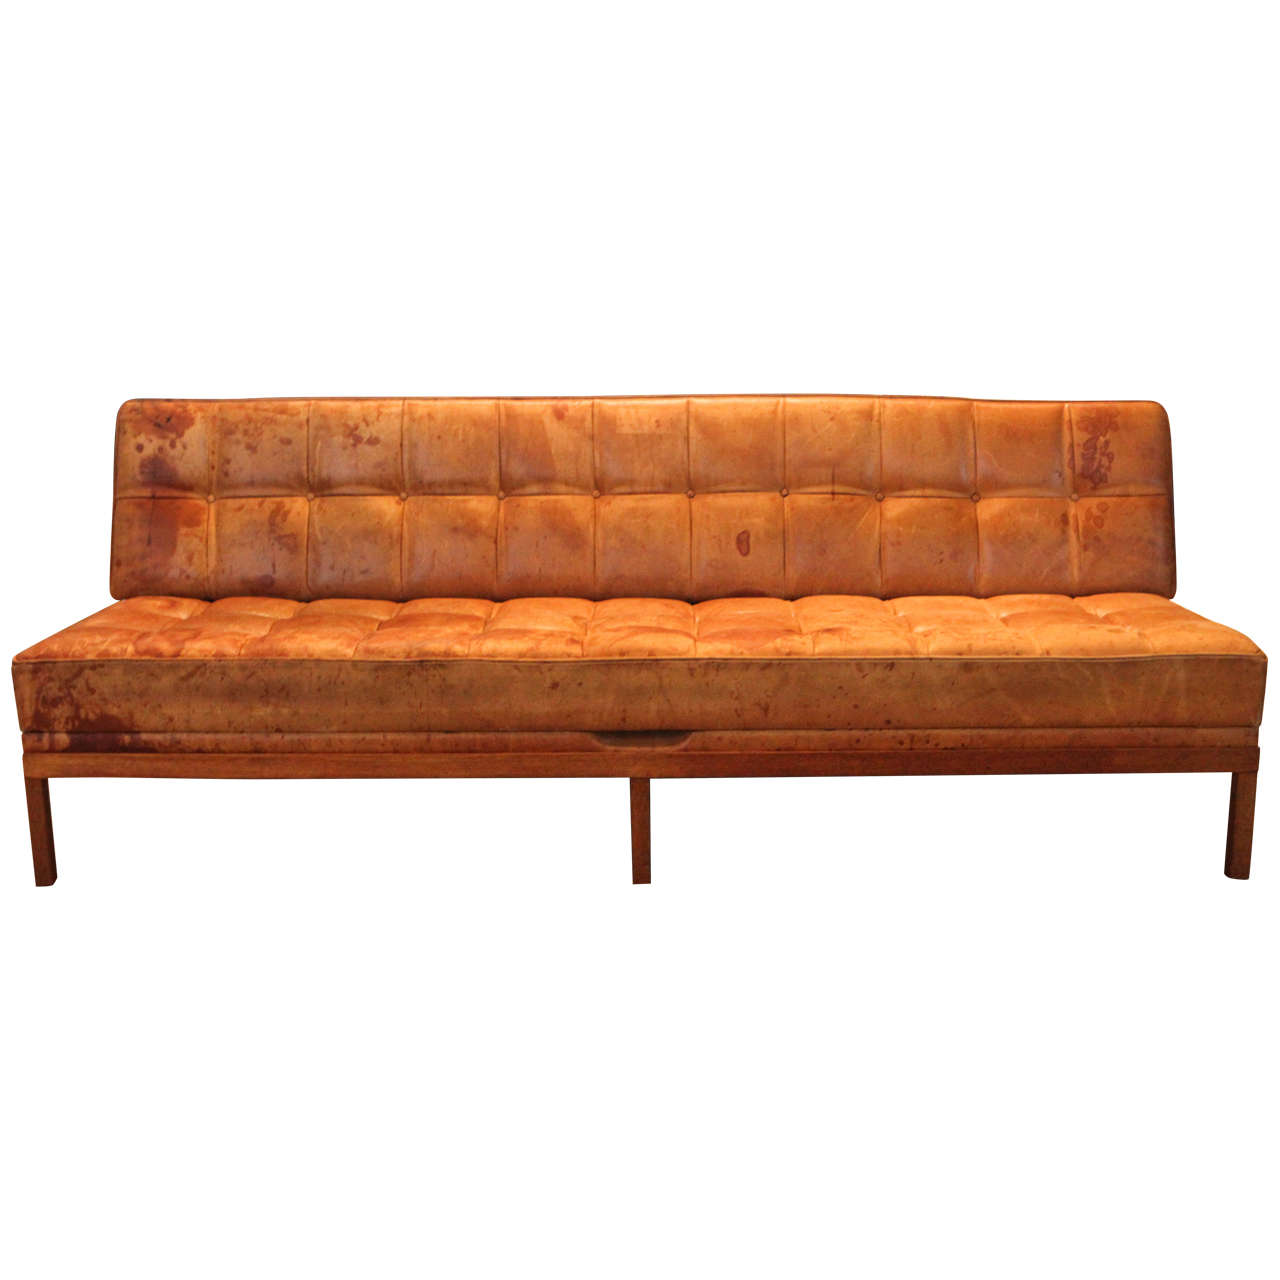 Sofa Dreams France Illums Bolighus Tufted Cognac Sofa Or Daybed Denmark